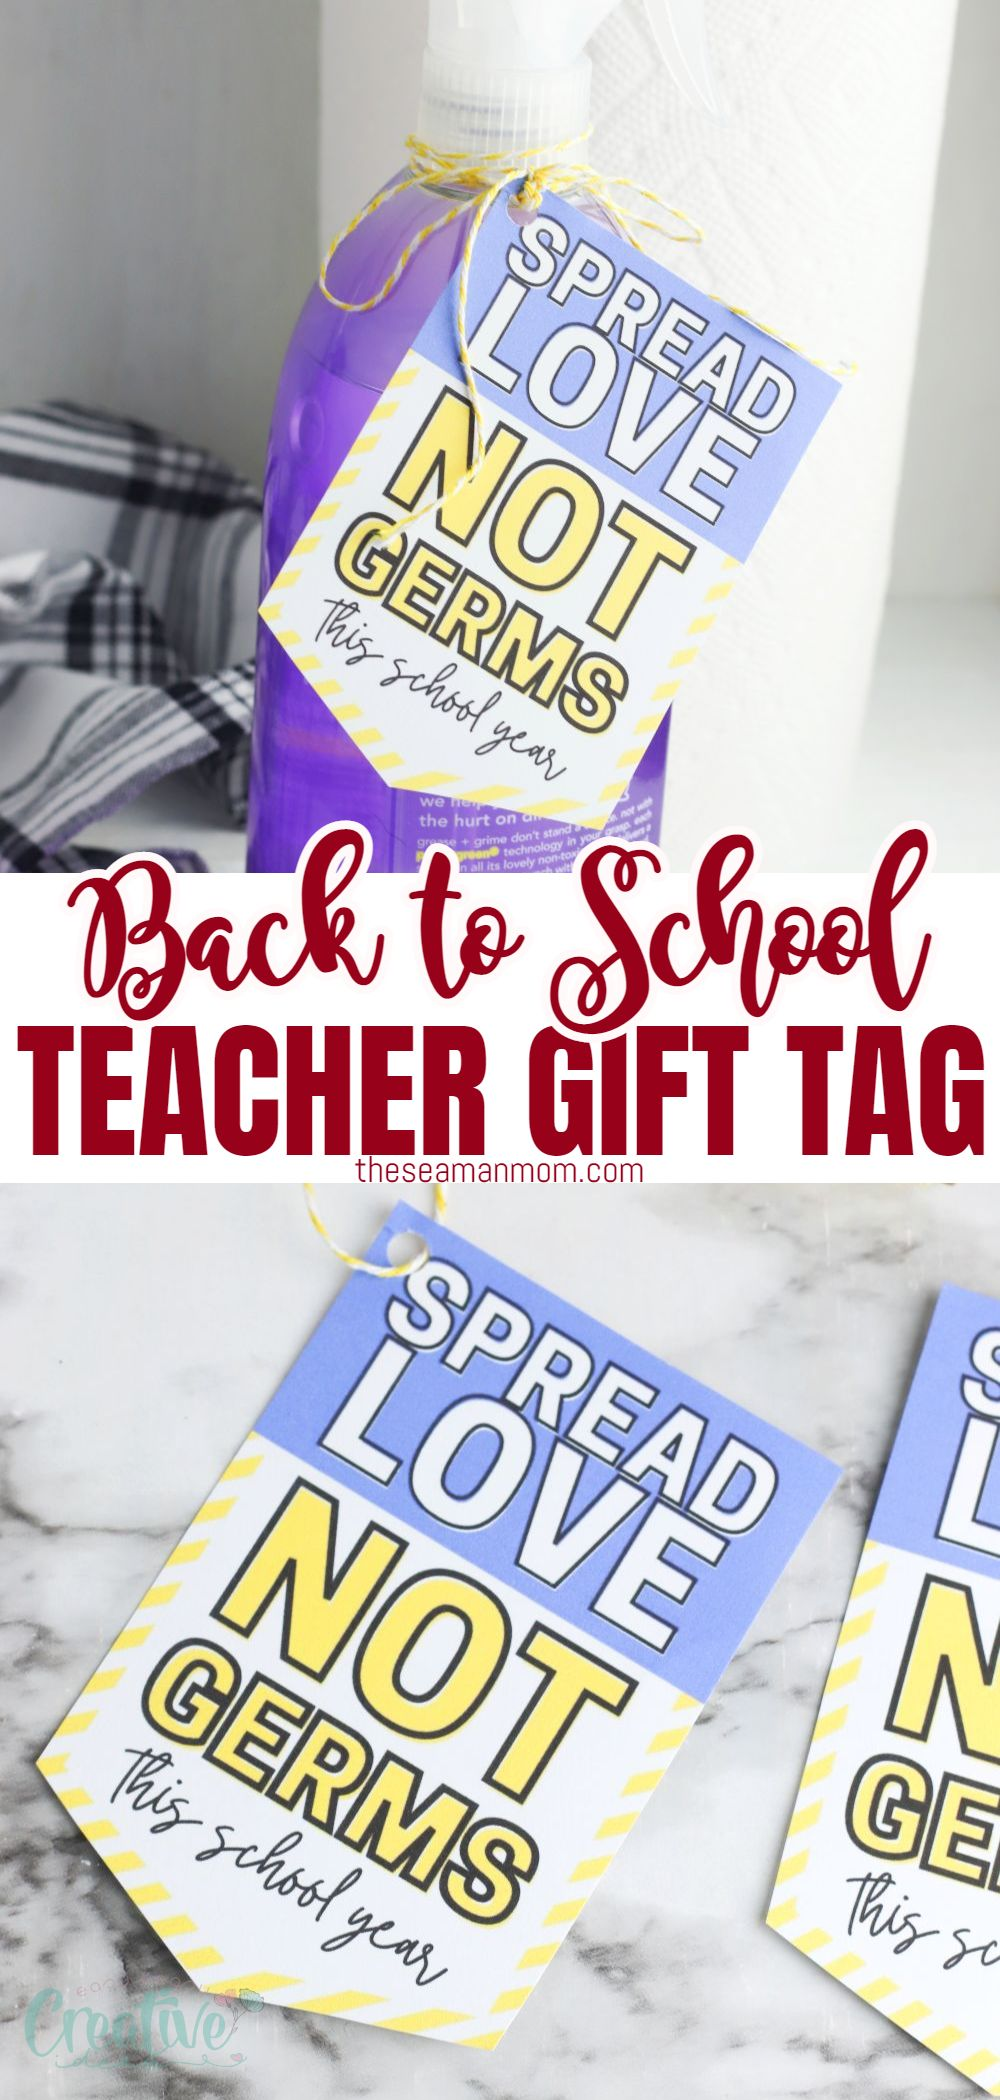 What better way to start the school year than helping your child's teacher keep the classroom clean? This helpful teacher appreciation tag is perfect for cleaning supplies and a useful present any teacher would love to receive! via @petroneagu